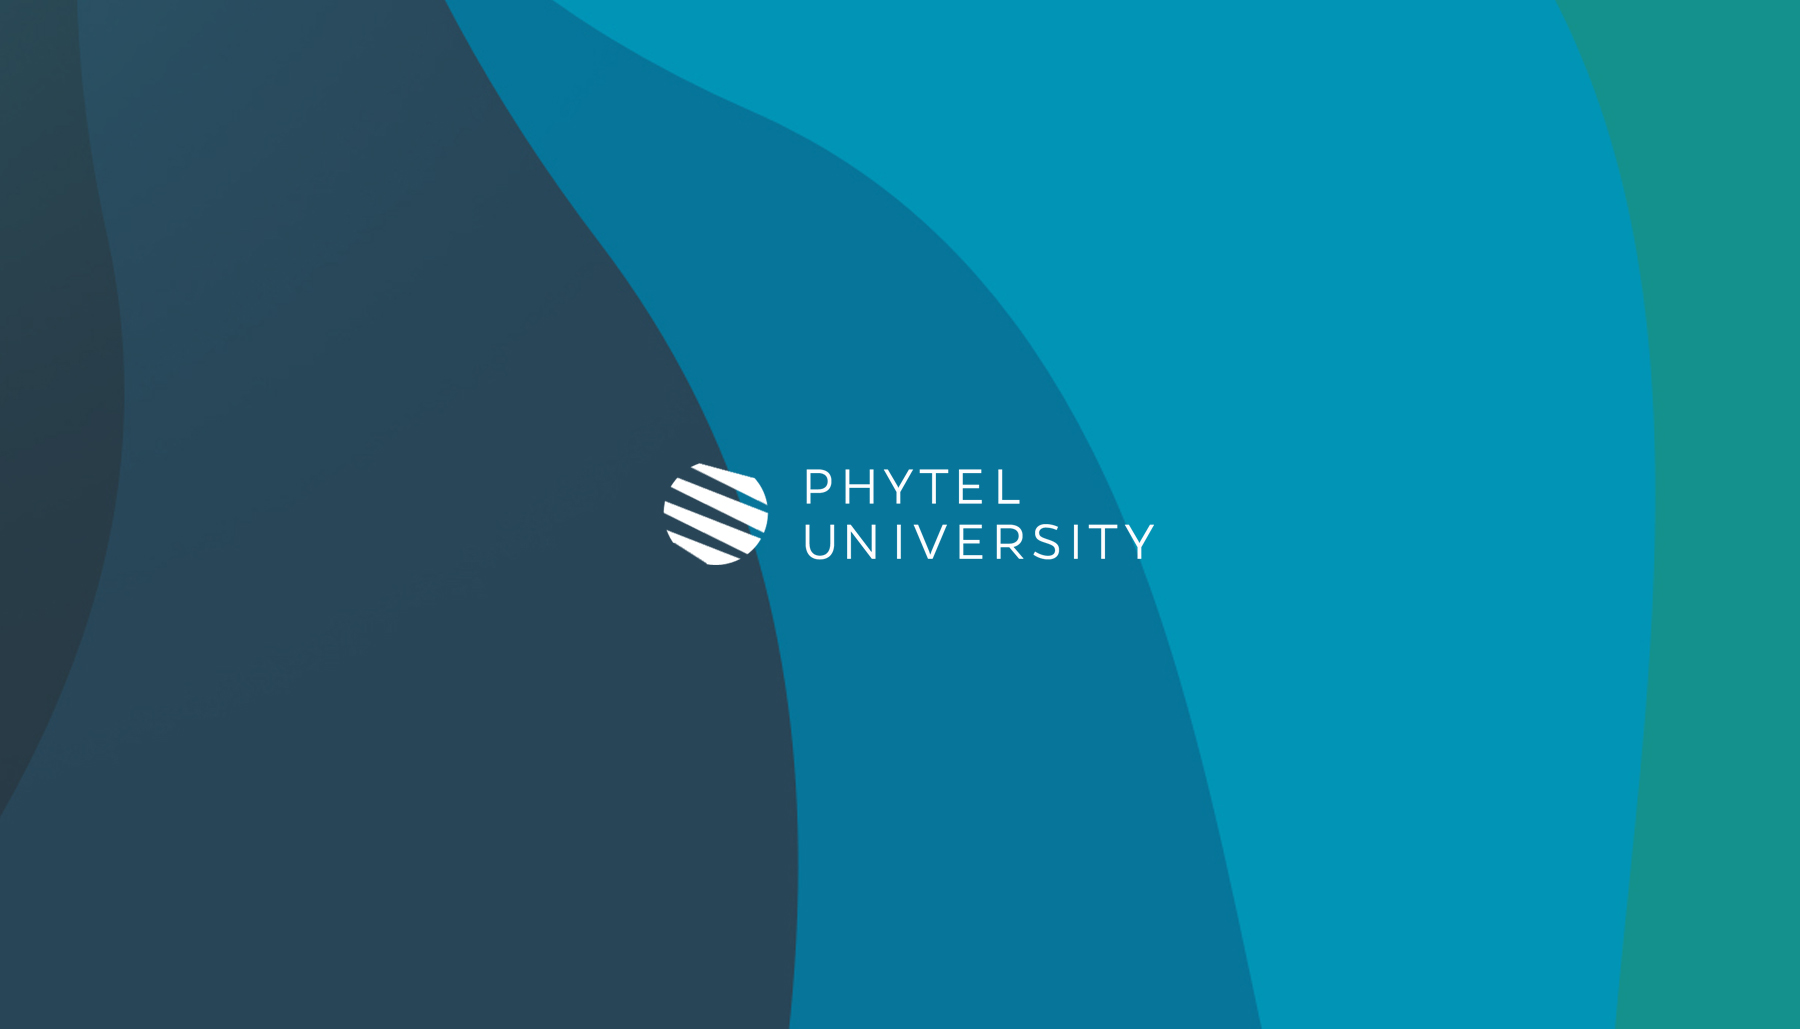 Phytel University, healthcare brand identity, healthcare tech branding, branding software product, university branding design